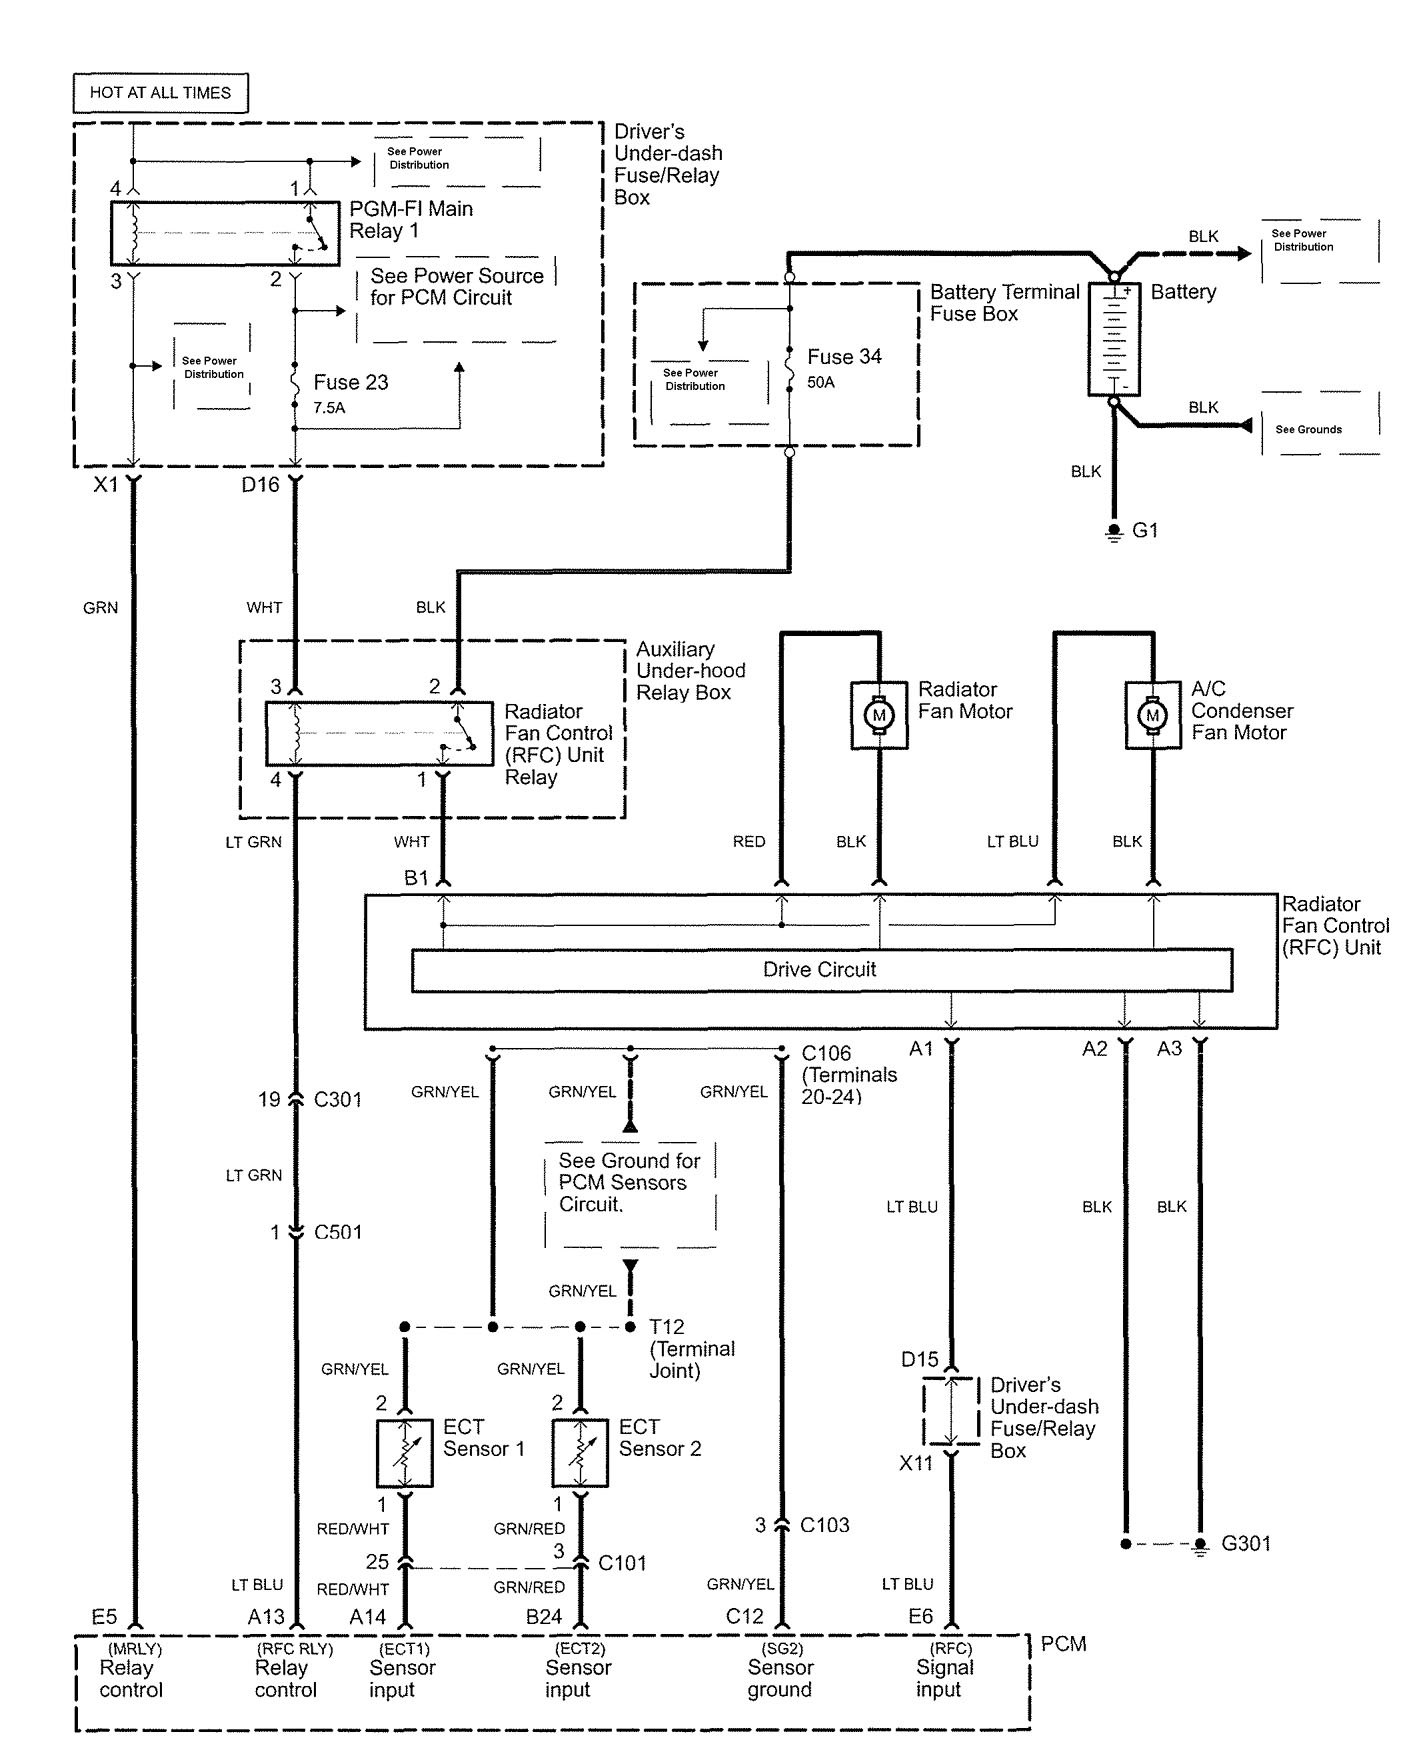 Acura RL (2006) - wiring diagrams - cooling fans - Carknowledge.infoCarknowledge.info